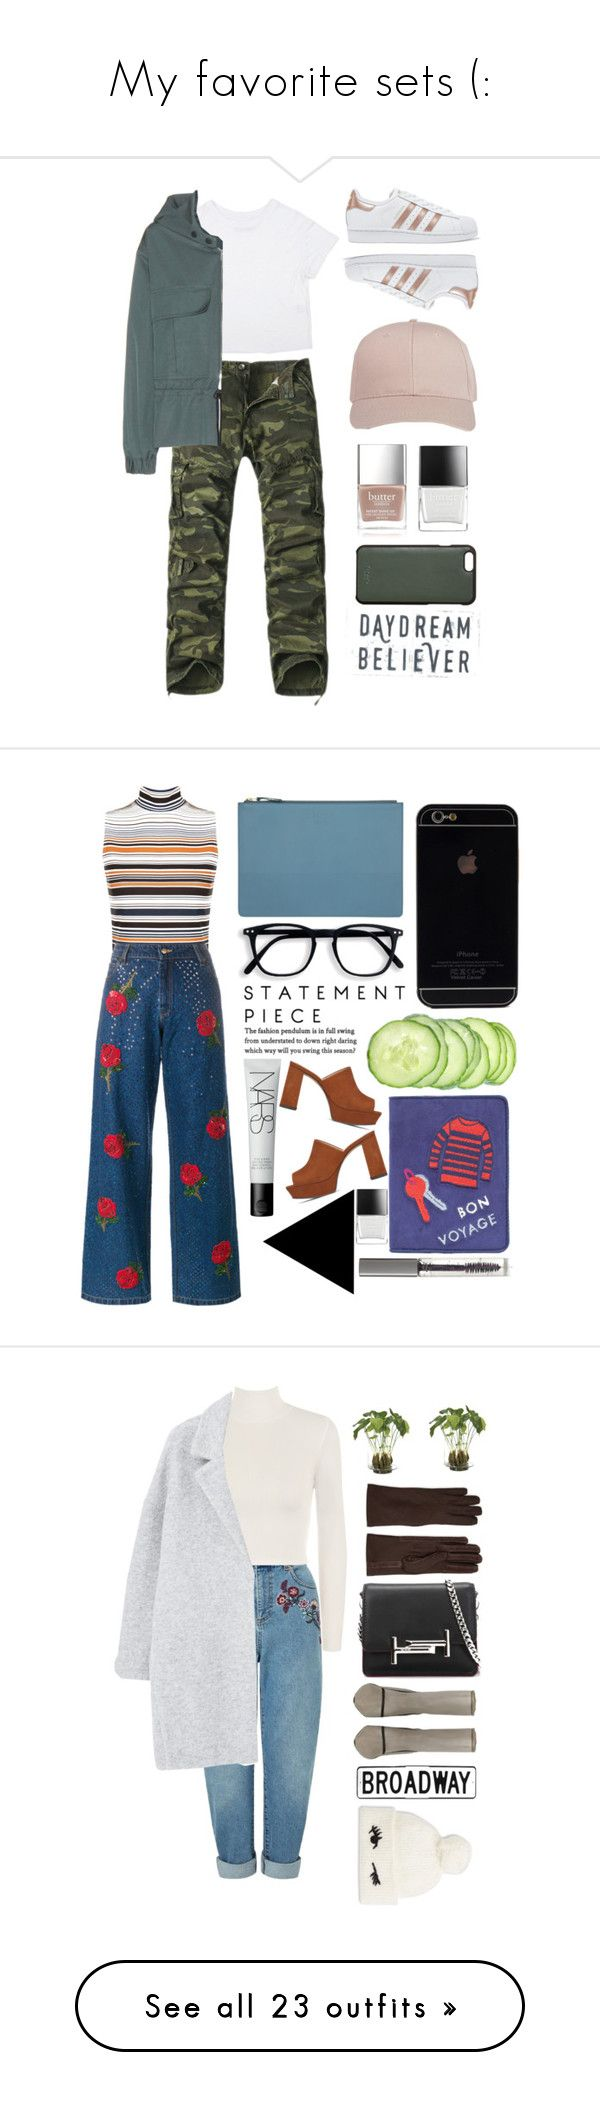 """""""My favorite sets (:"""" by aline-sofia ❤ liked on Polyvore featuring STELLA McCARTNEY, adidas Originals, Butter London, Knomo, WearAll, Ashish, CÉLINE, NARS Cosmetics, Vince Camuto and Lizzie Fortunato Jewels"""